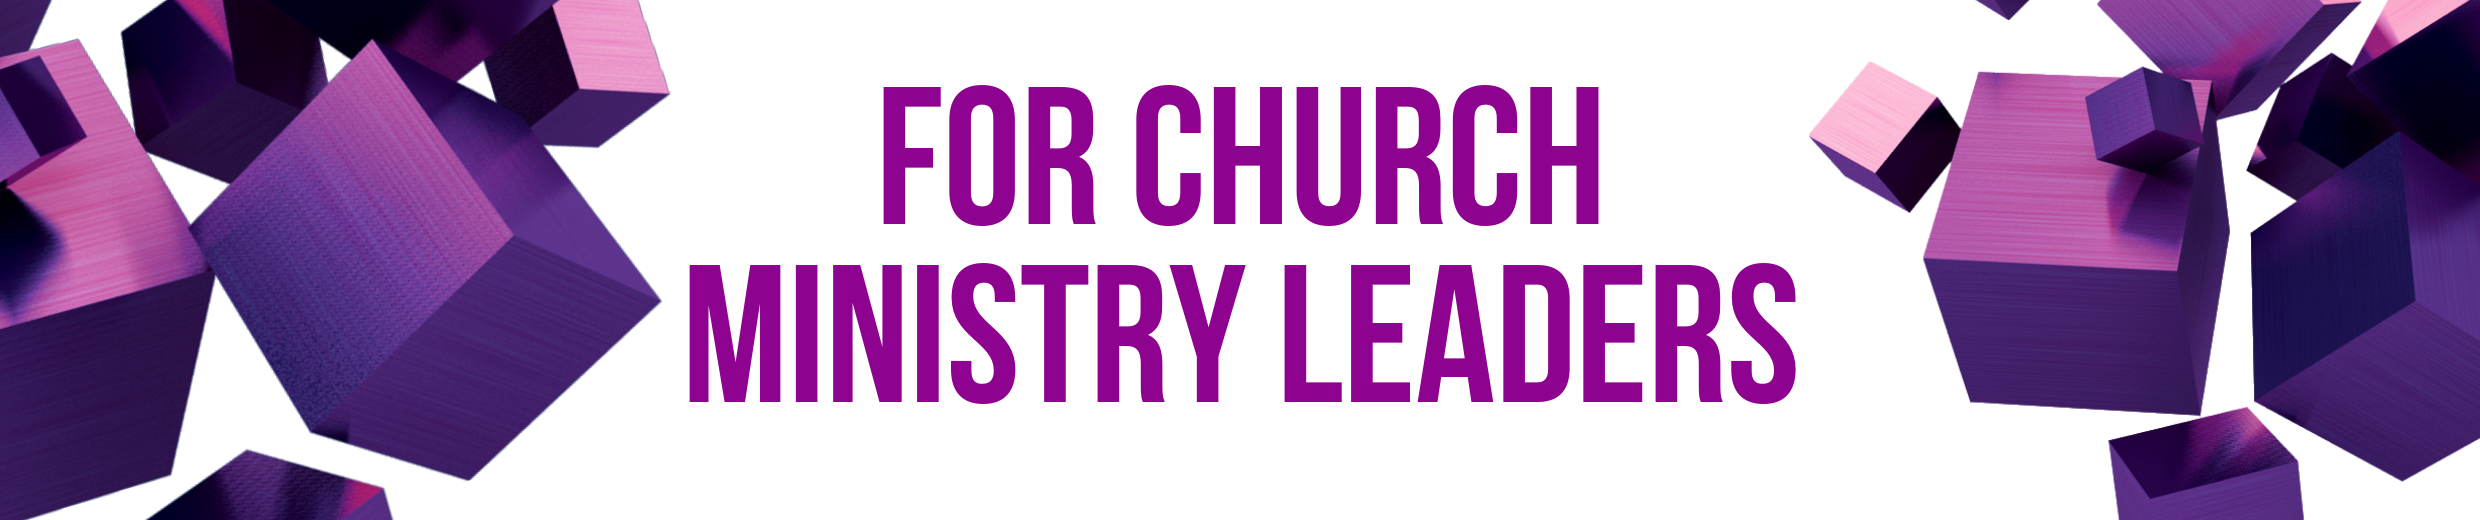 church leaders banner.png